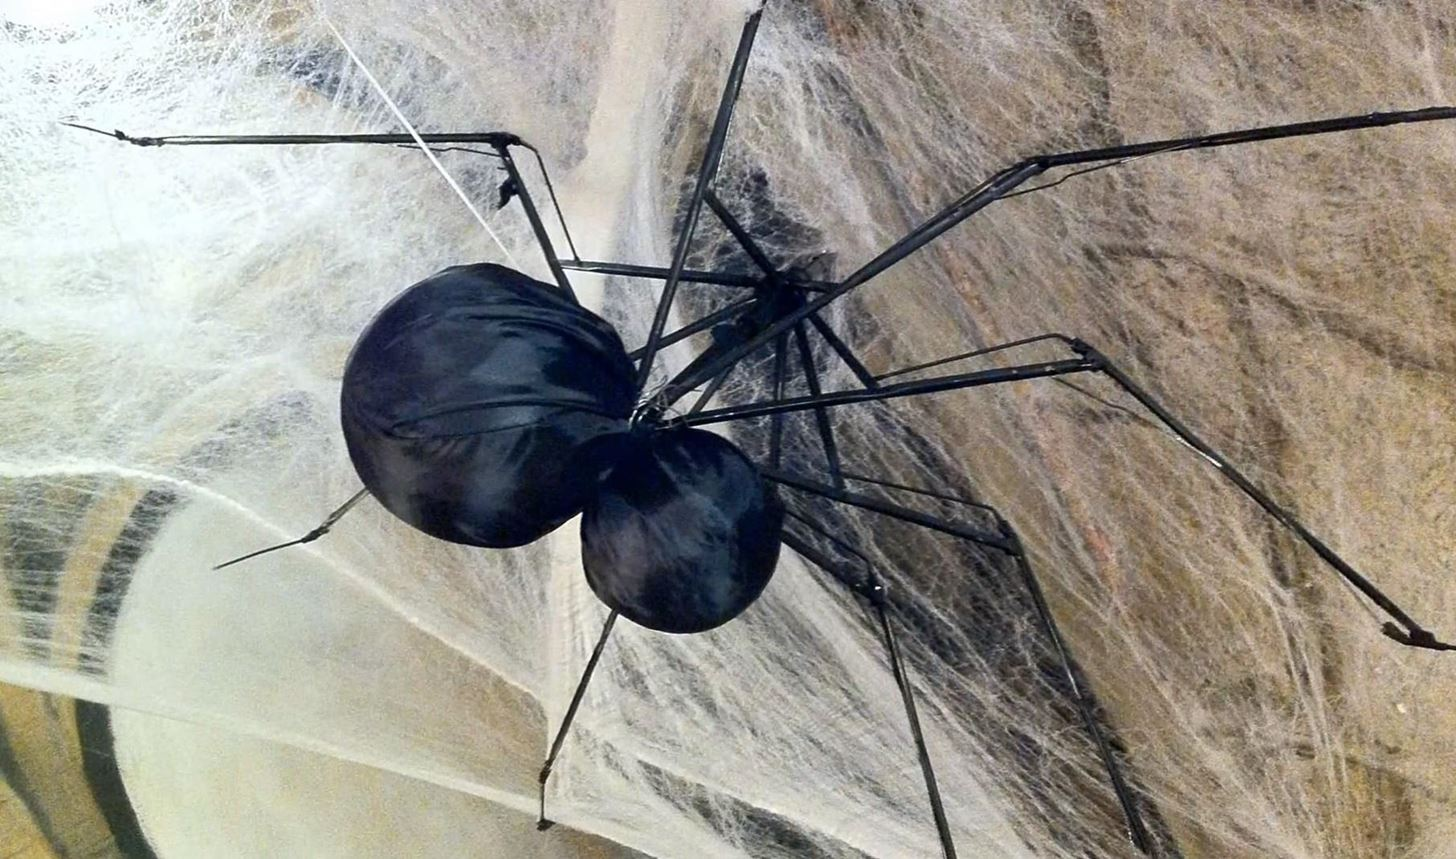 Spiderbrella: How to Turn an Old Umbrella into a Man-Eating Spider